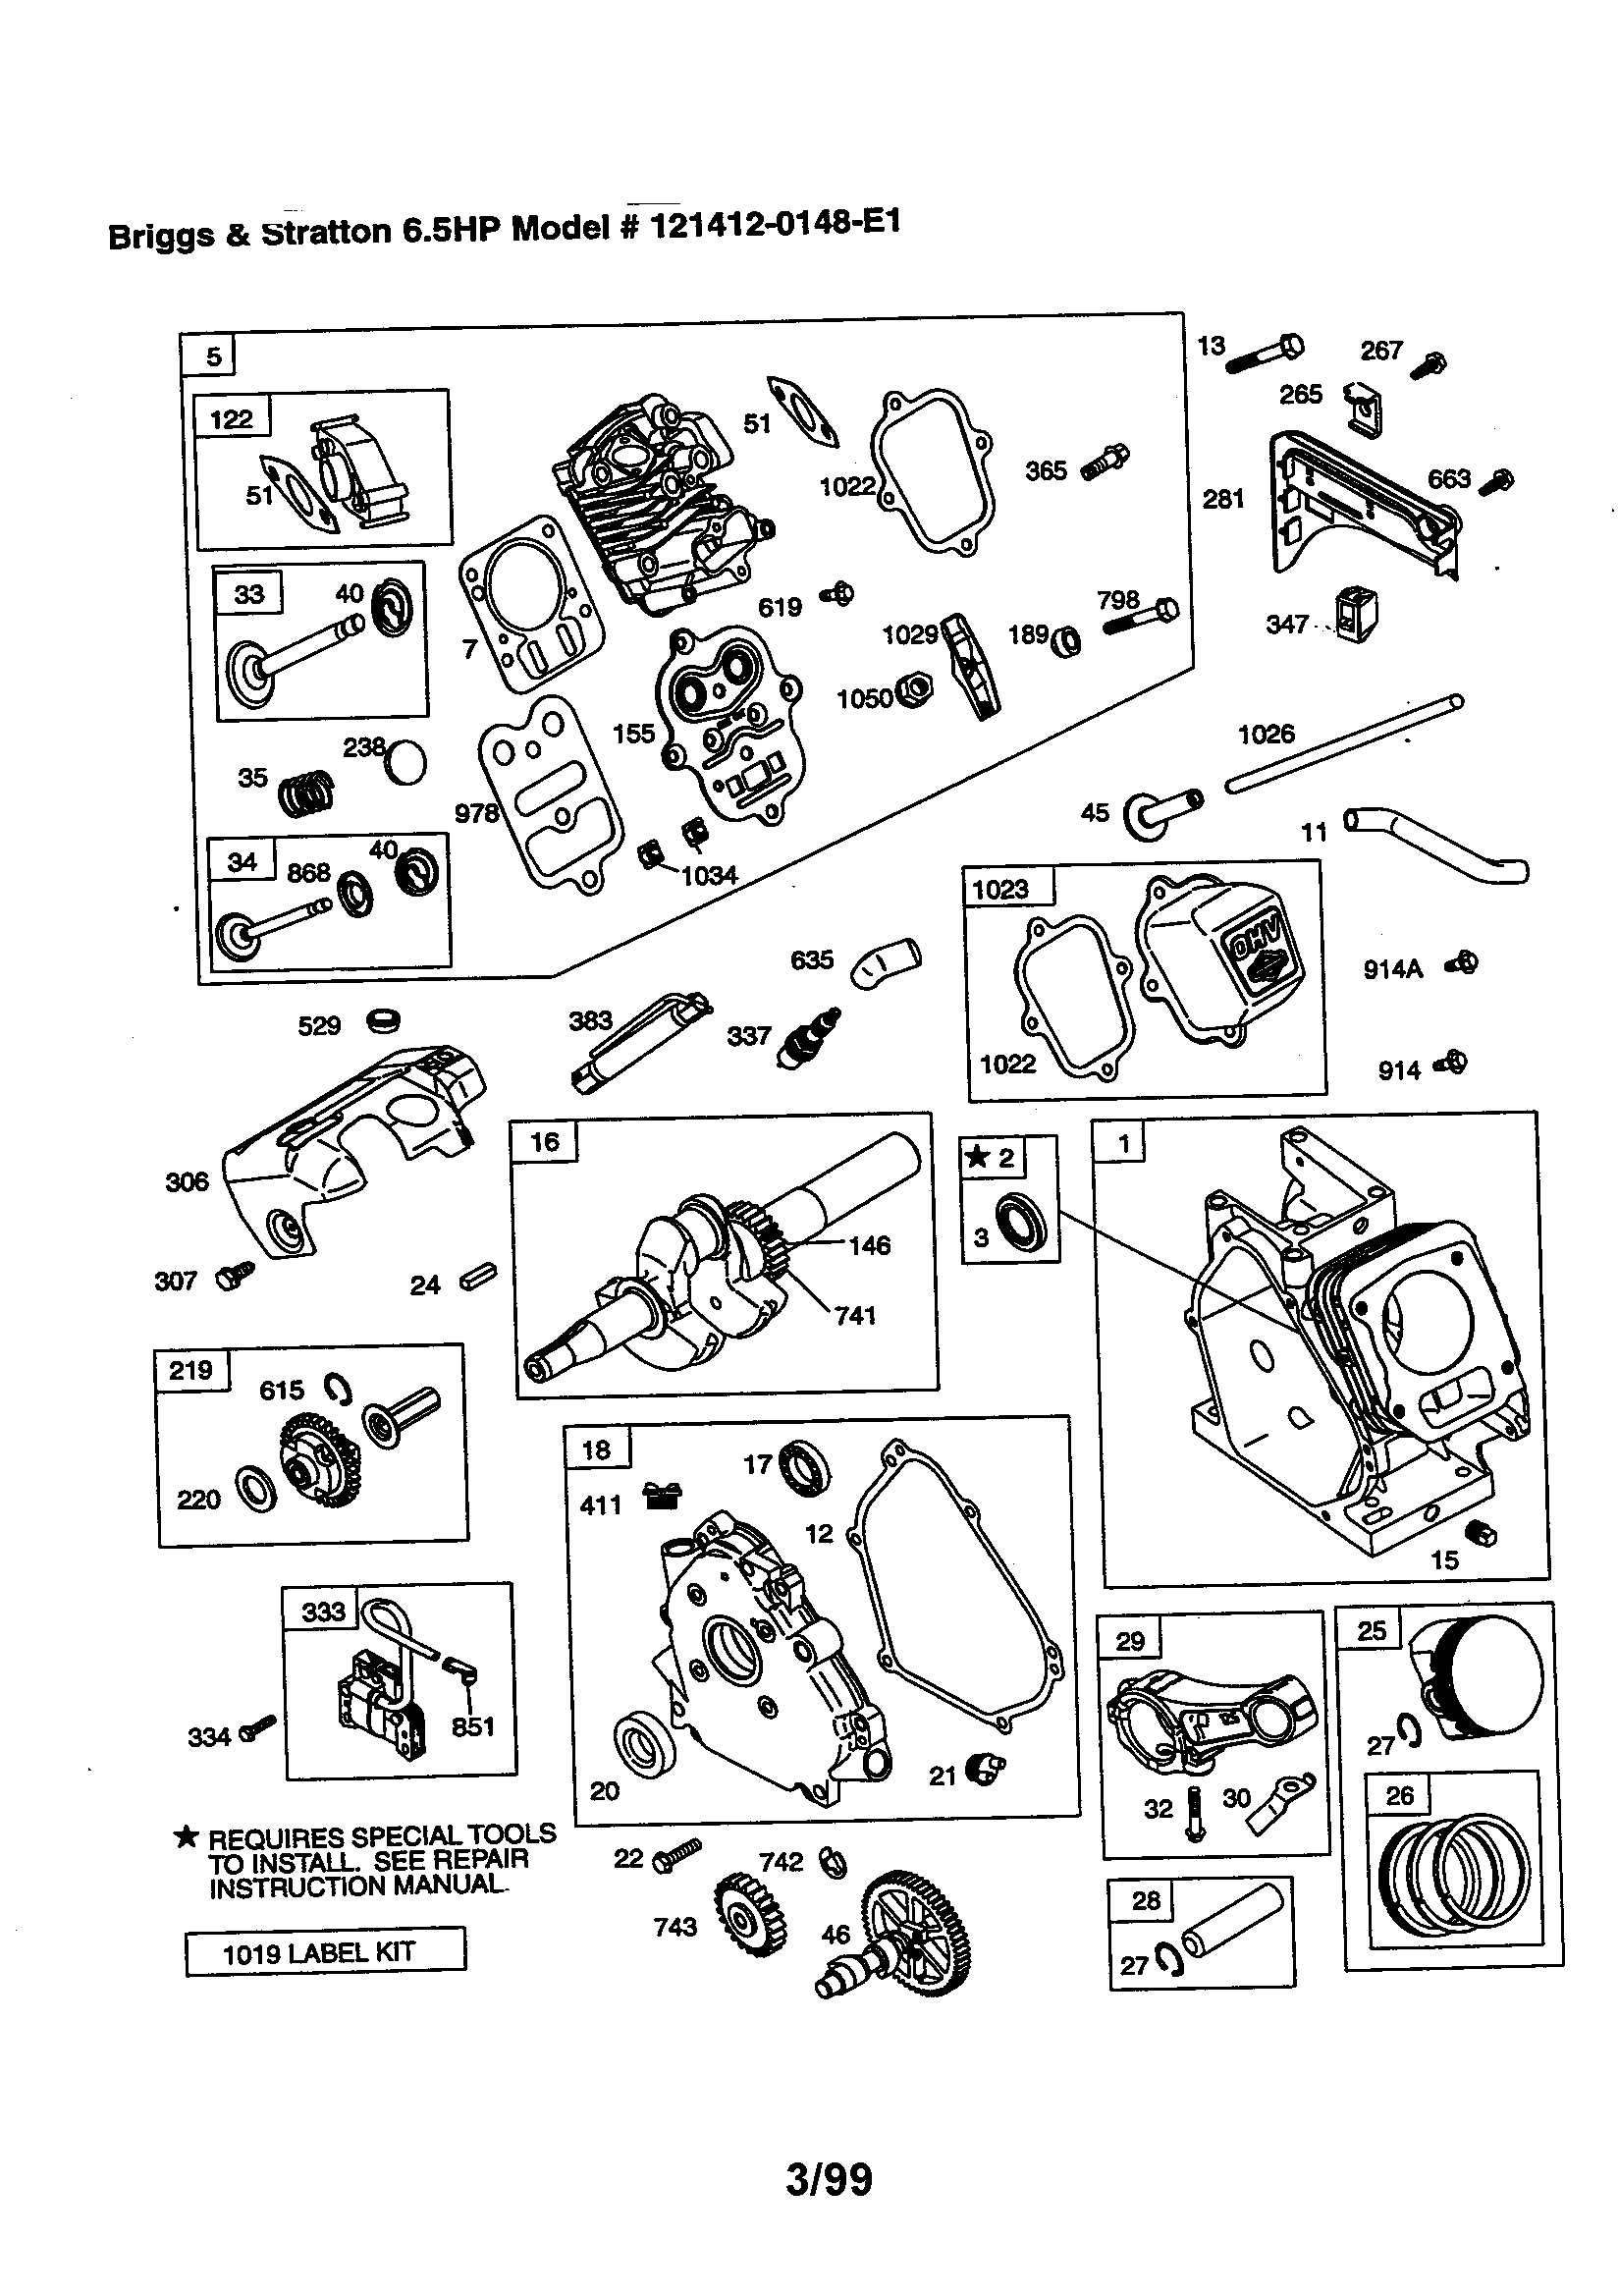 5Hp Briggs And Stratton Carburetor Diagram 21 Hp Briggs And Stratton Wiring Diagram Wiring Library